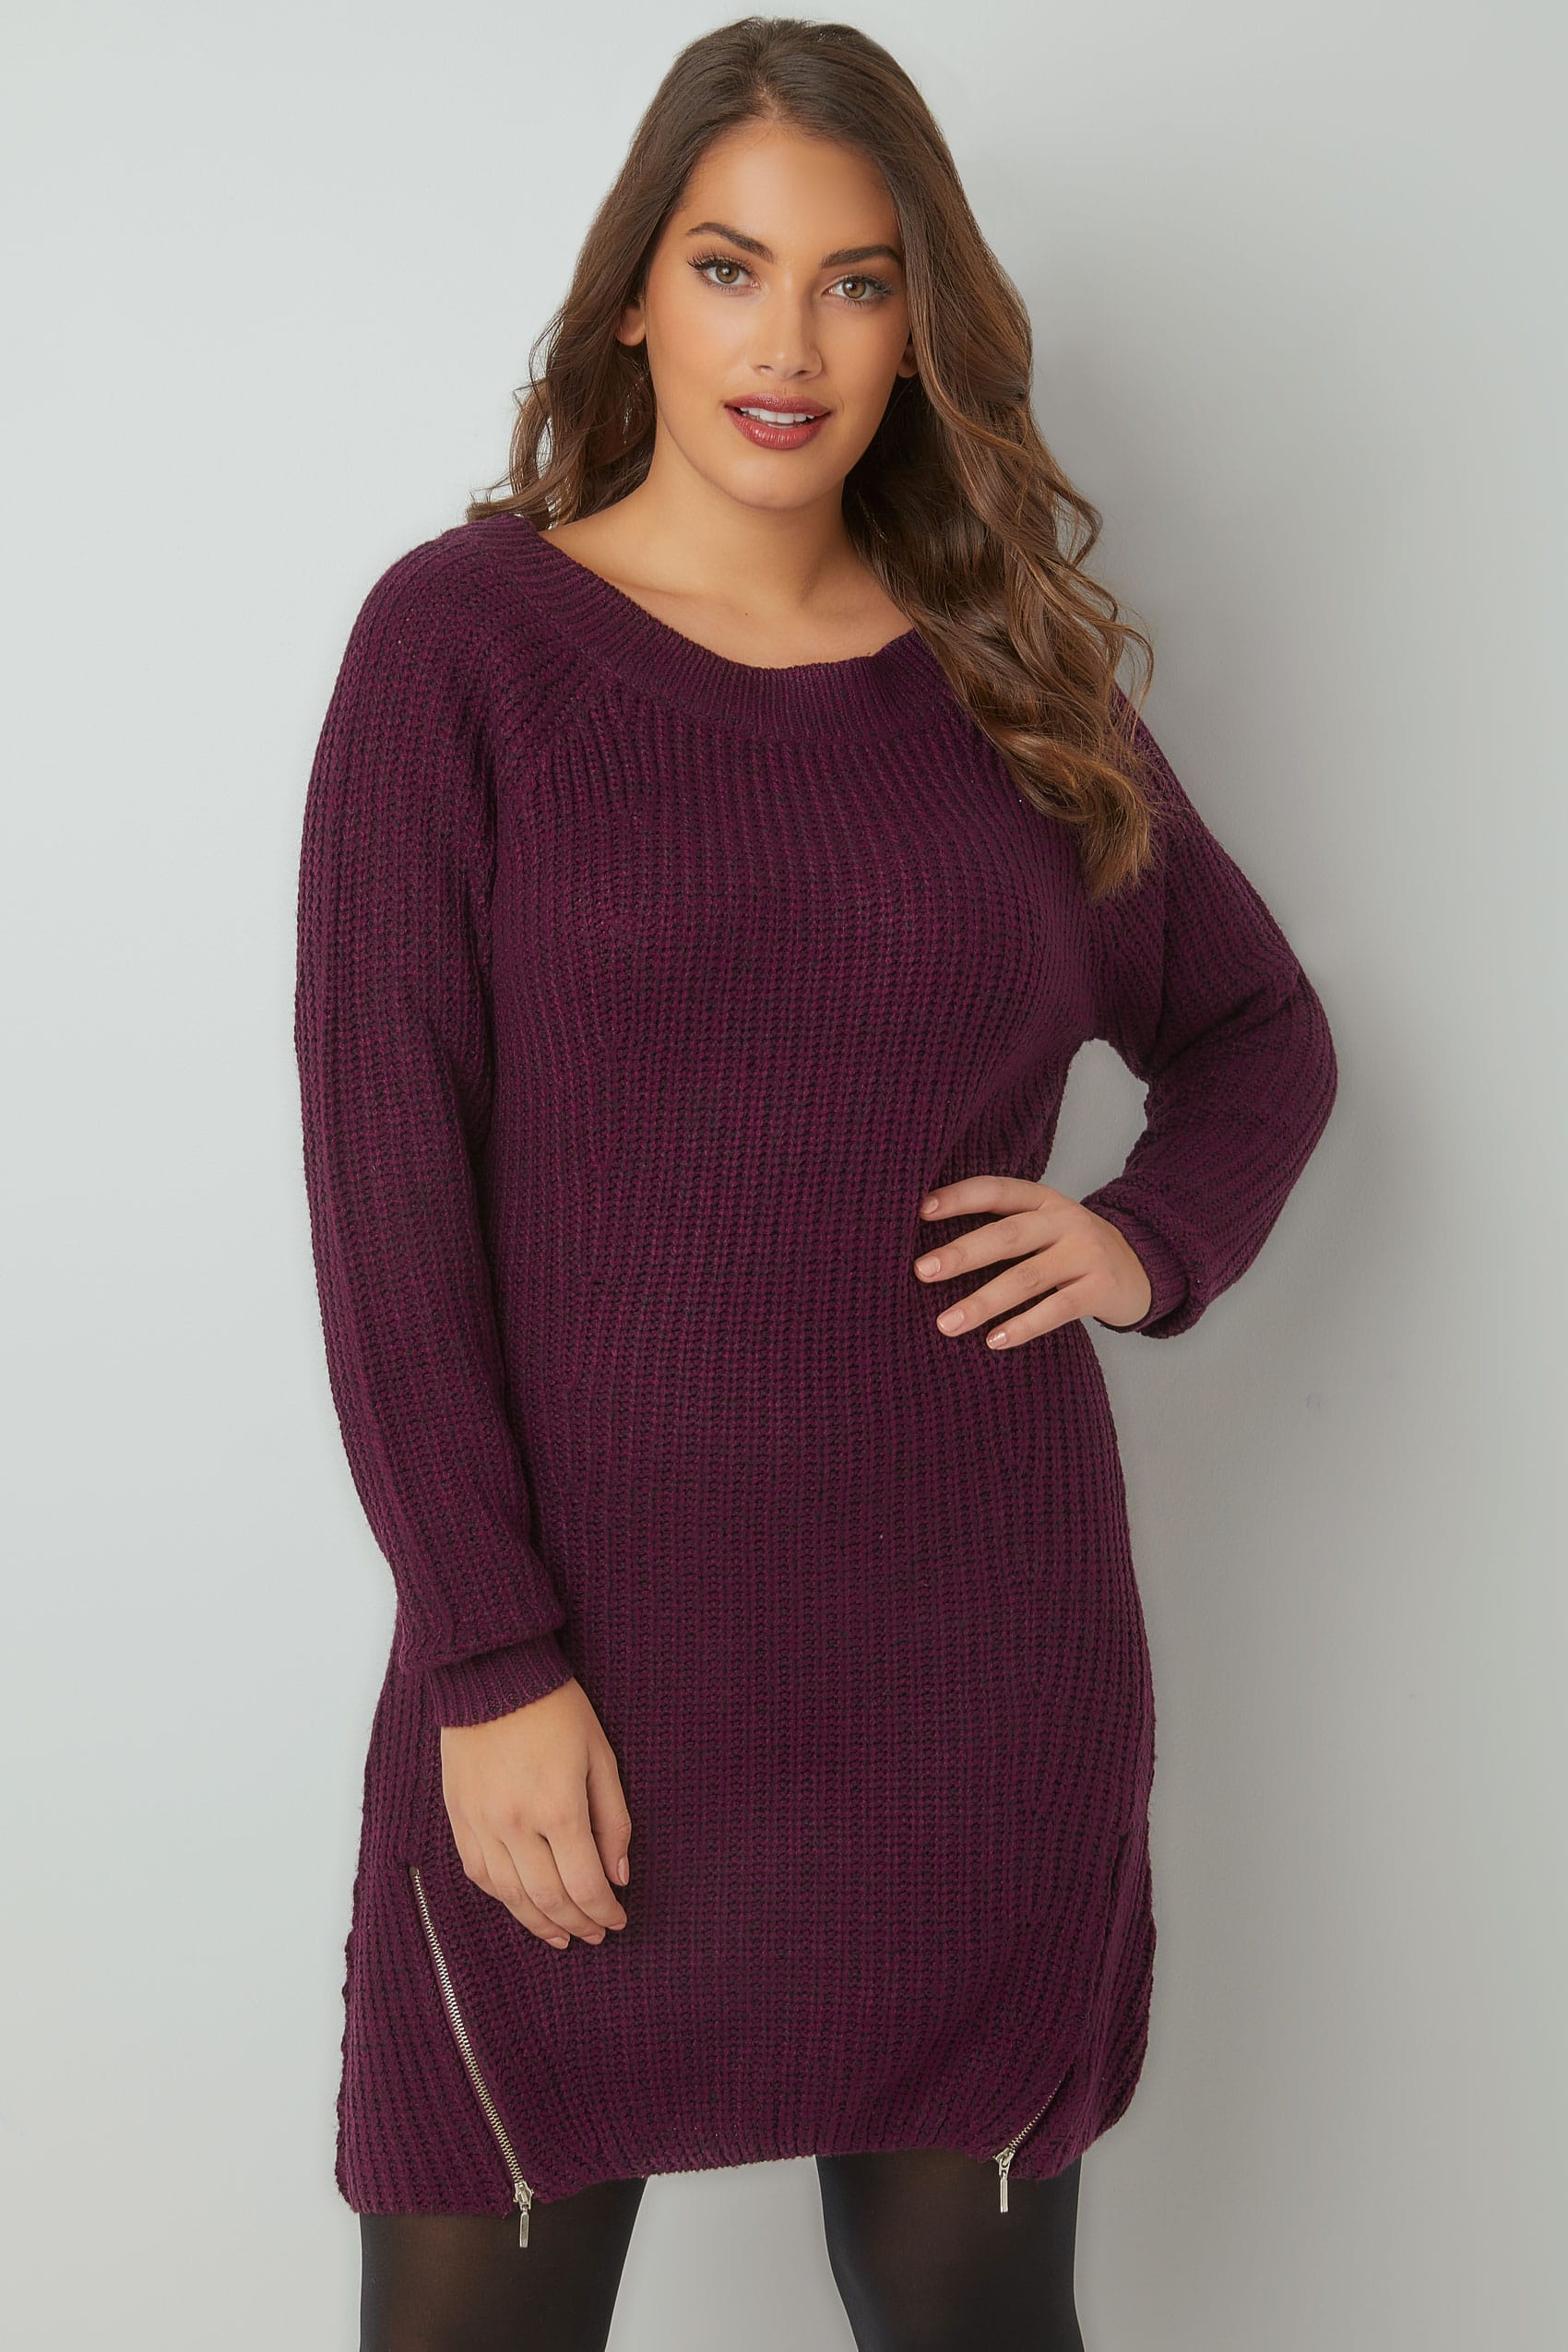 purple chunky knit tunic dress with zip hem plus size 16 to 36. Black Bedroom Furniture Sets. Home Design Ideas